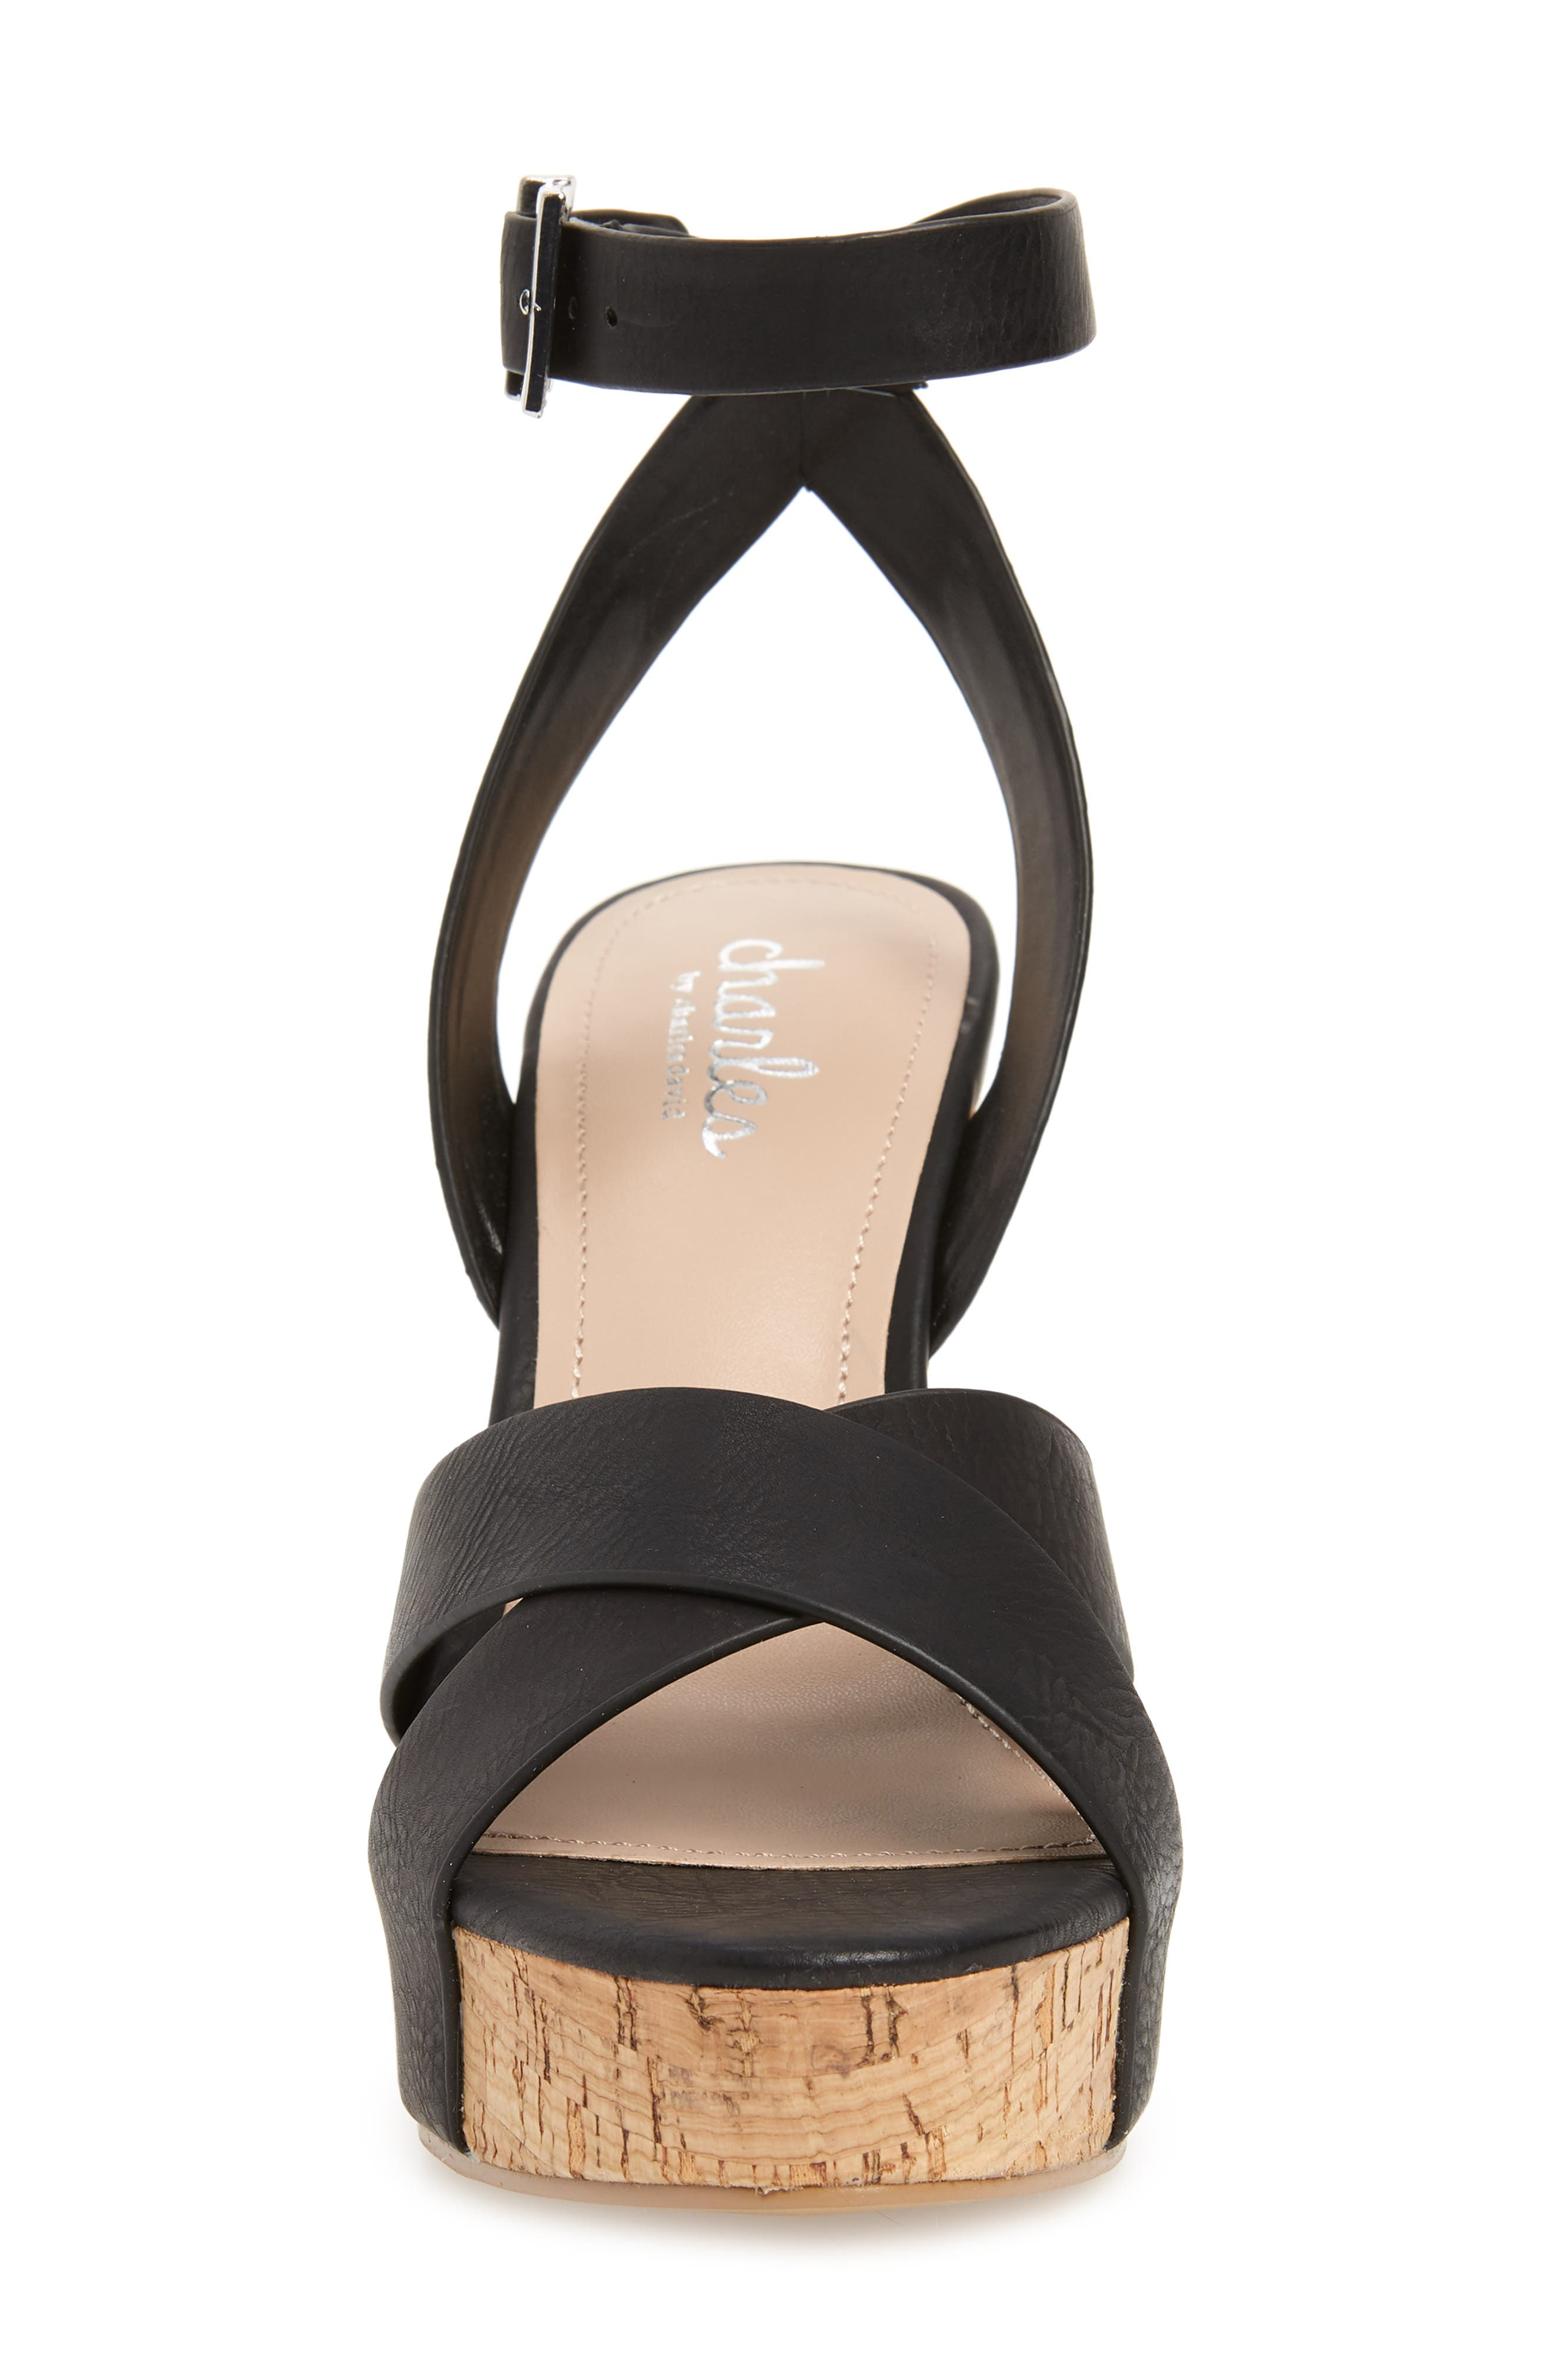 CHARLES BY CHARLES DAVID, Aleck Platform Wedge Sandal, Alternate thumbnail 4, color, BLACK FAUX LEATHER